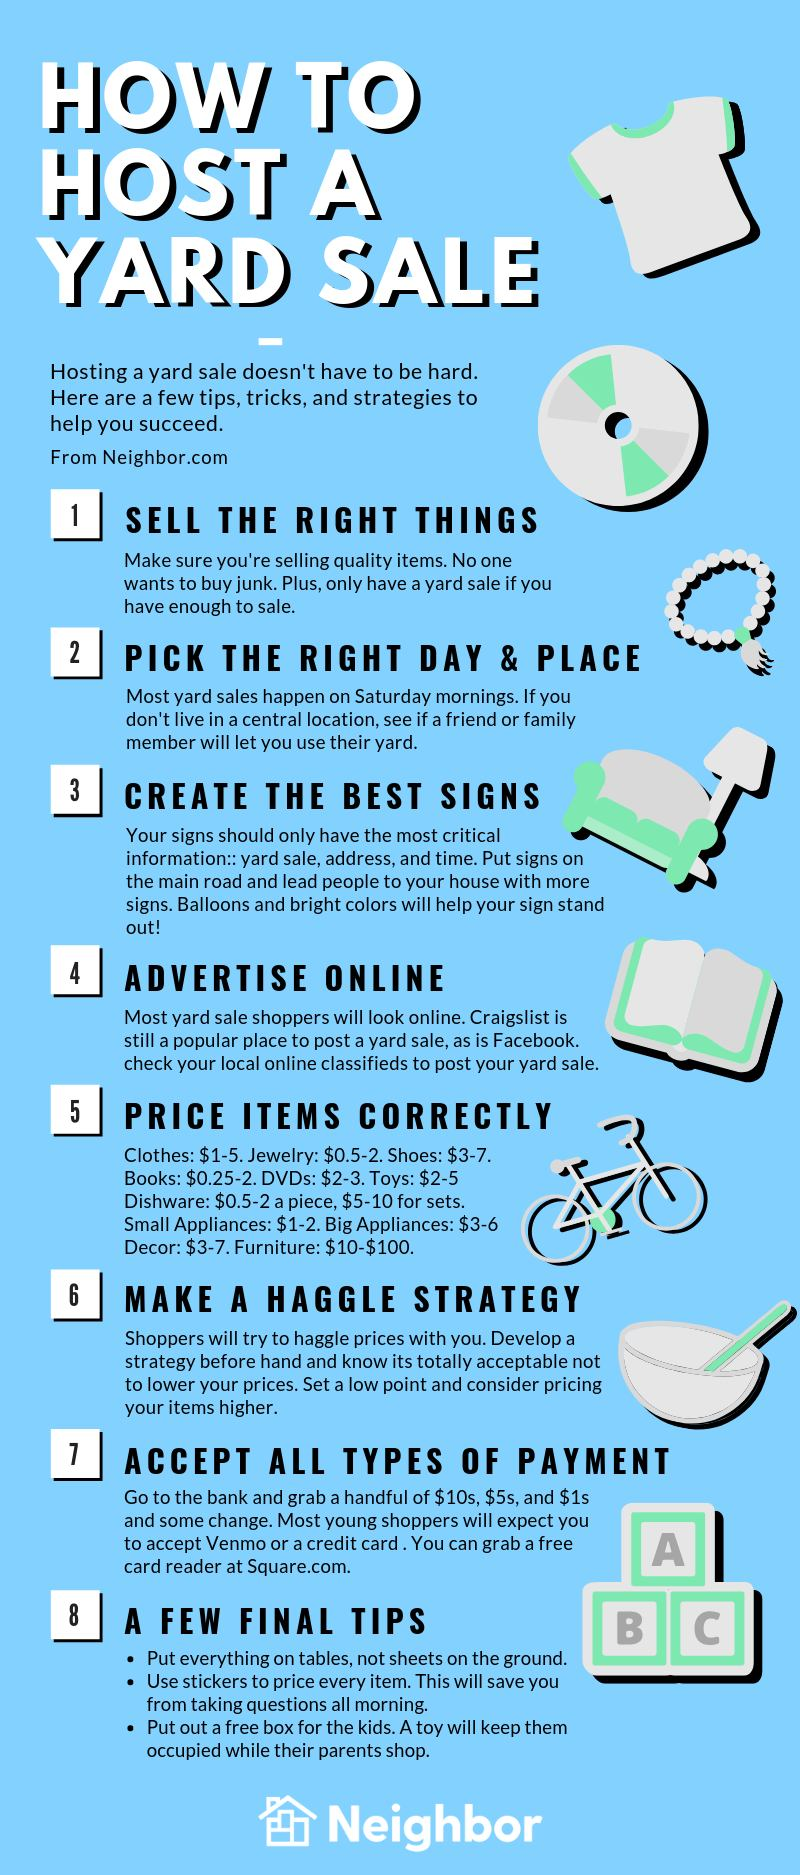 Yard Sales: How to Host, Pricing, and Tips [Checklist